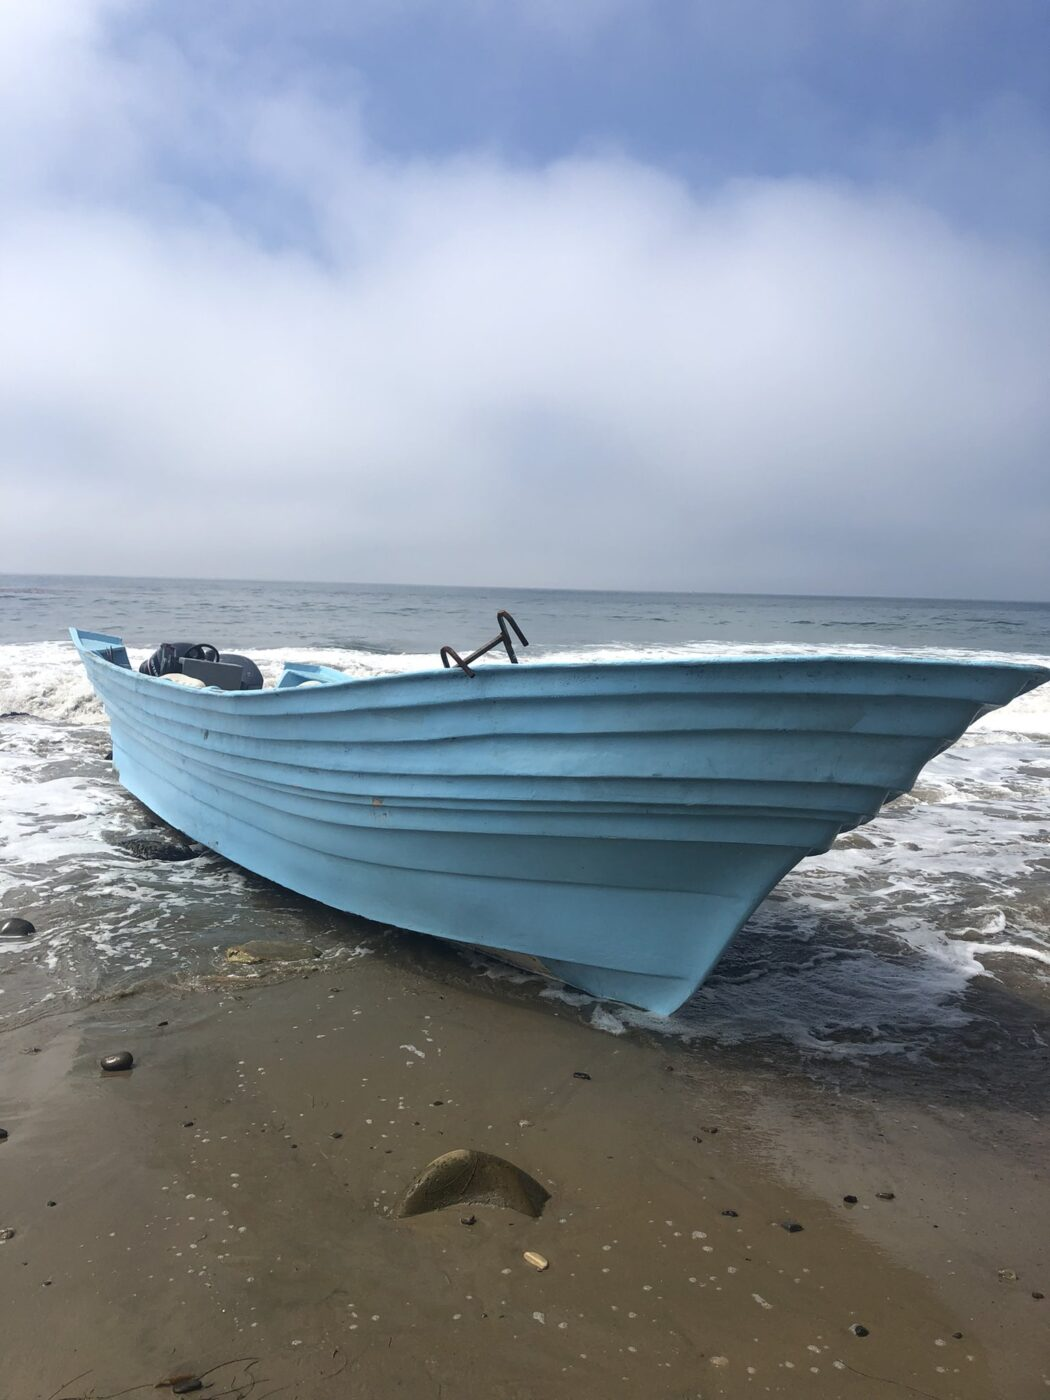 State Parks Rangers & Lifeguards Respond to Panga Boat Possibly Involved in Human Smuggling